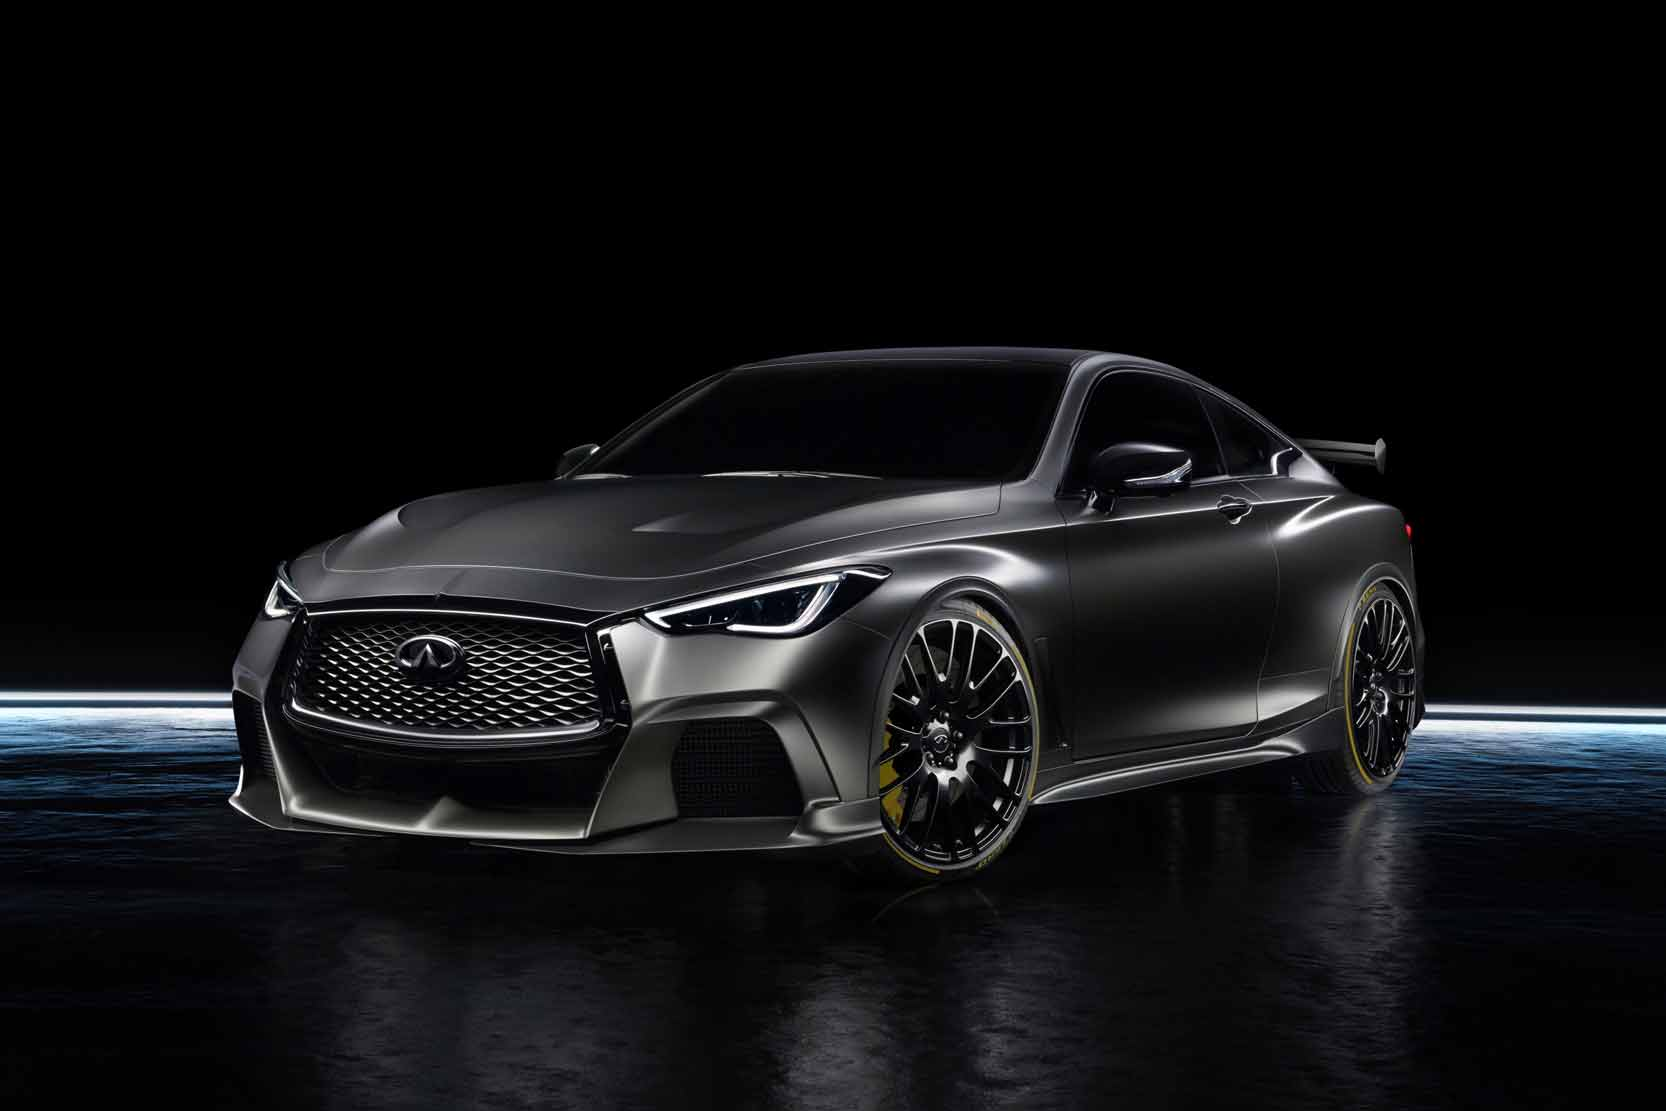 Exterieur_Infiniti-Project-Black-S_6